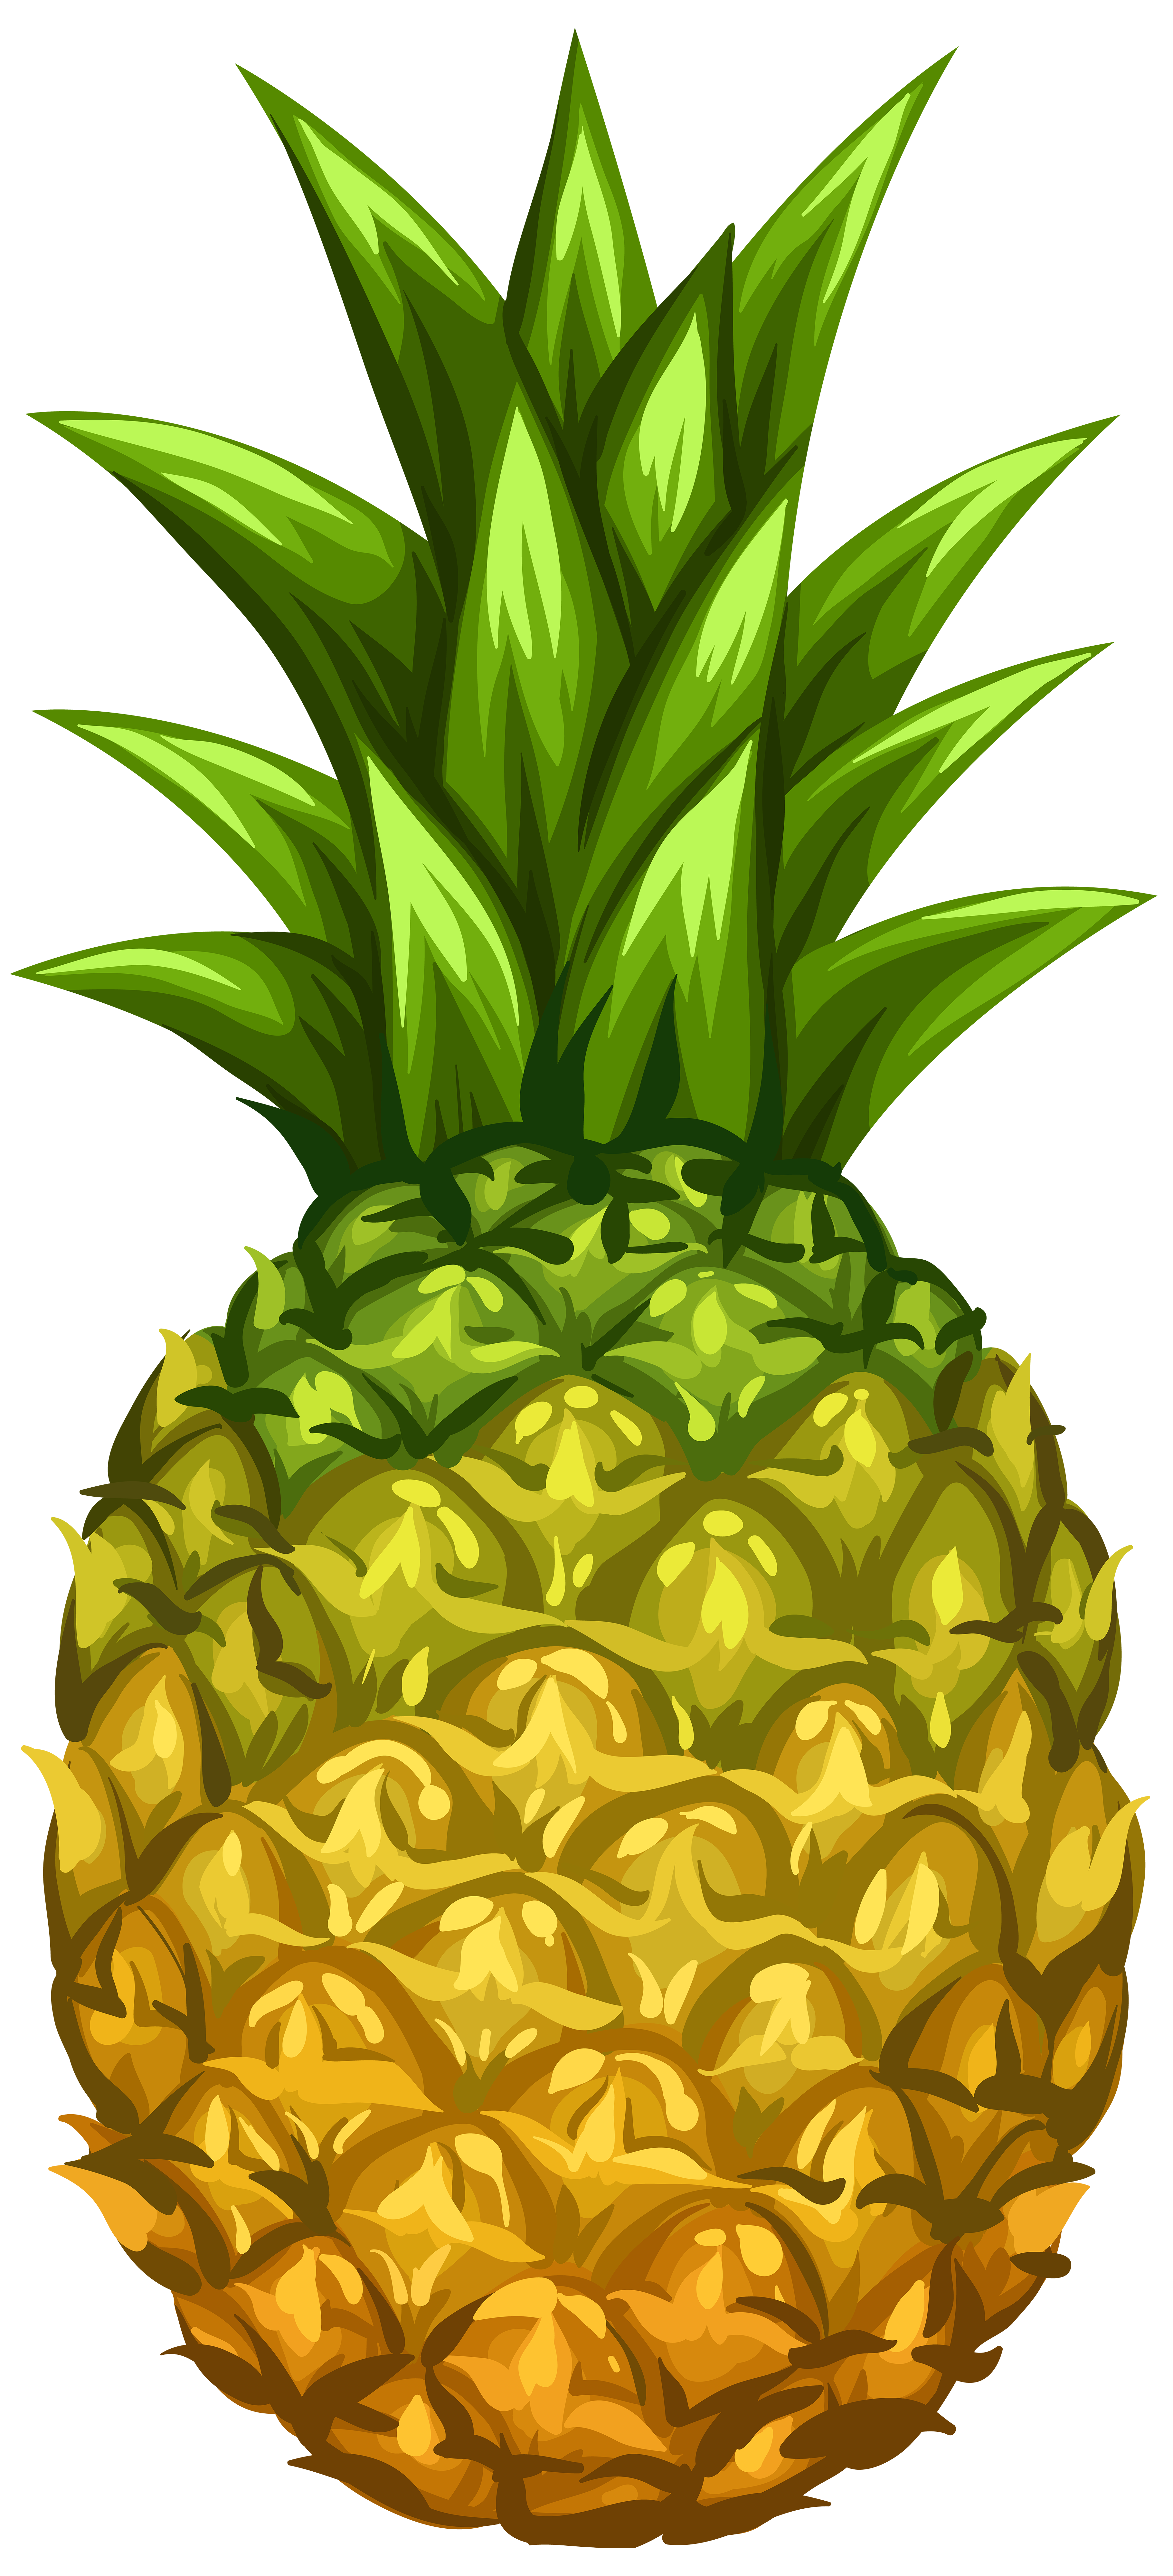 Pineapple png. Clip art image gallery